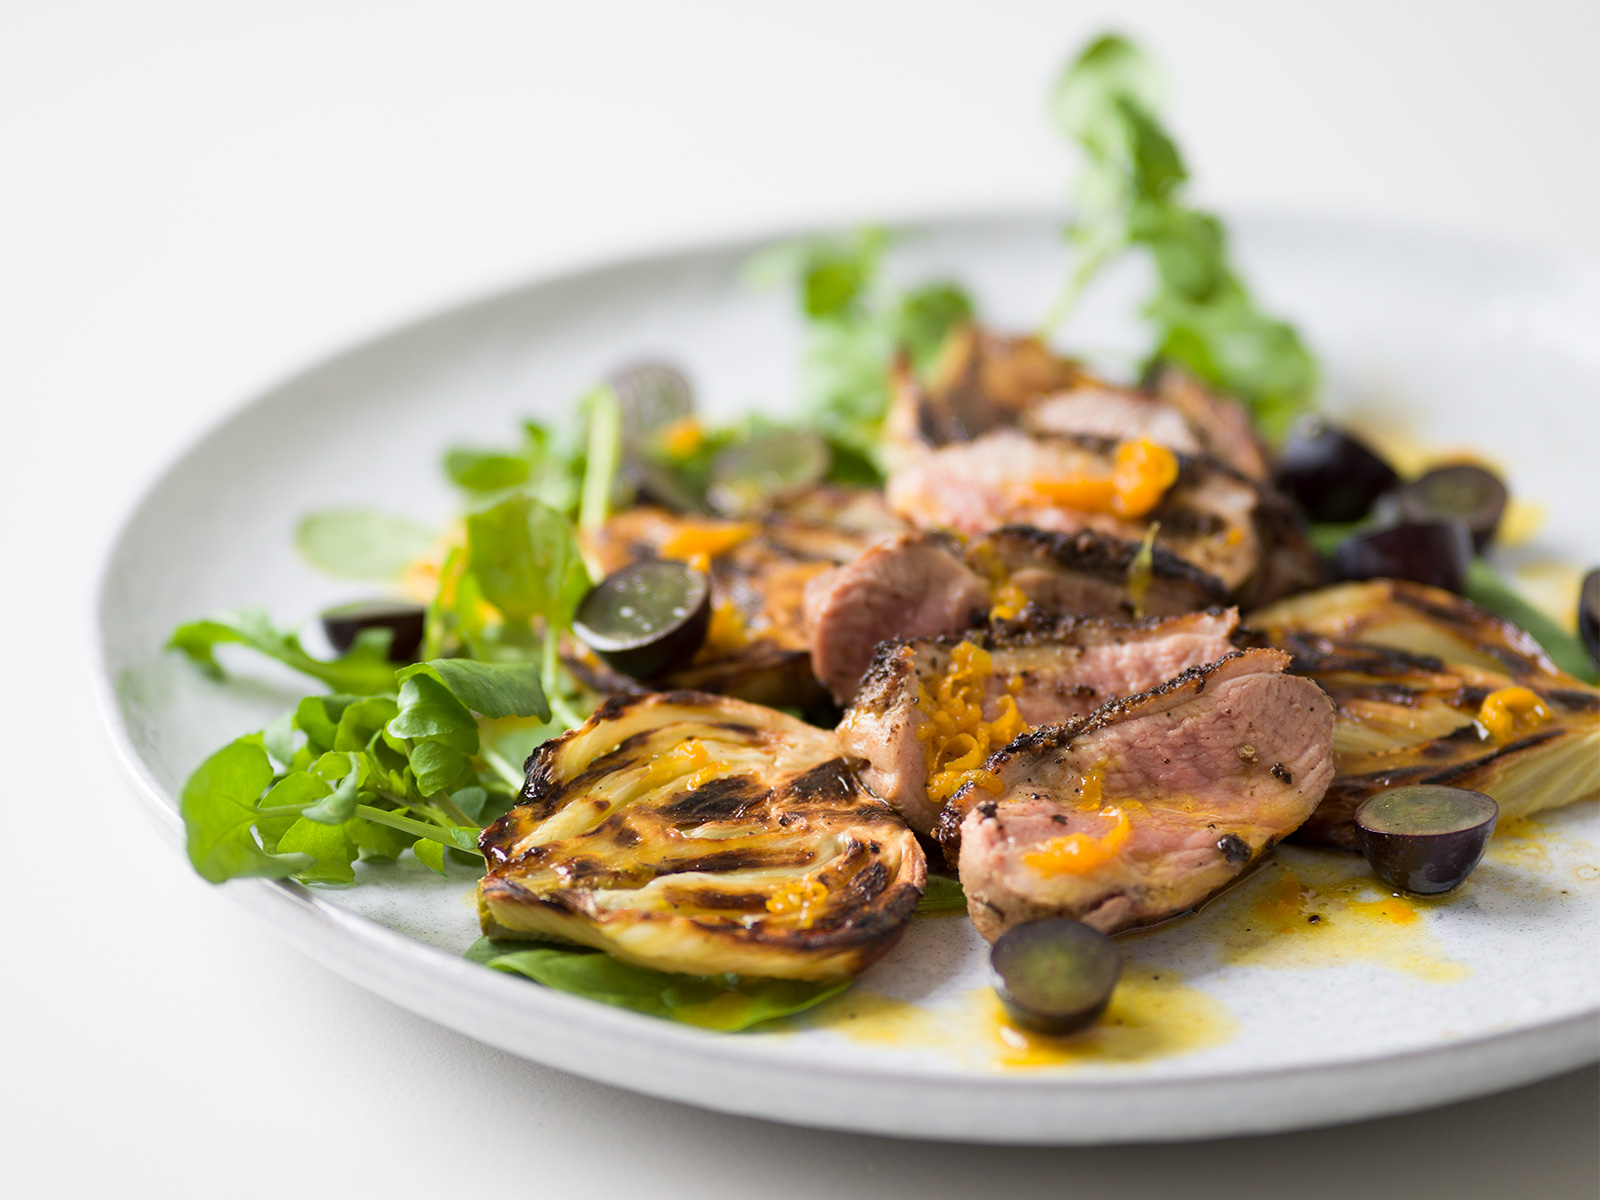 Spiced Duck & Roasted Fennel Salad